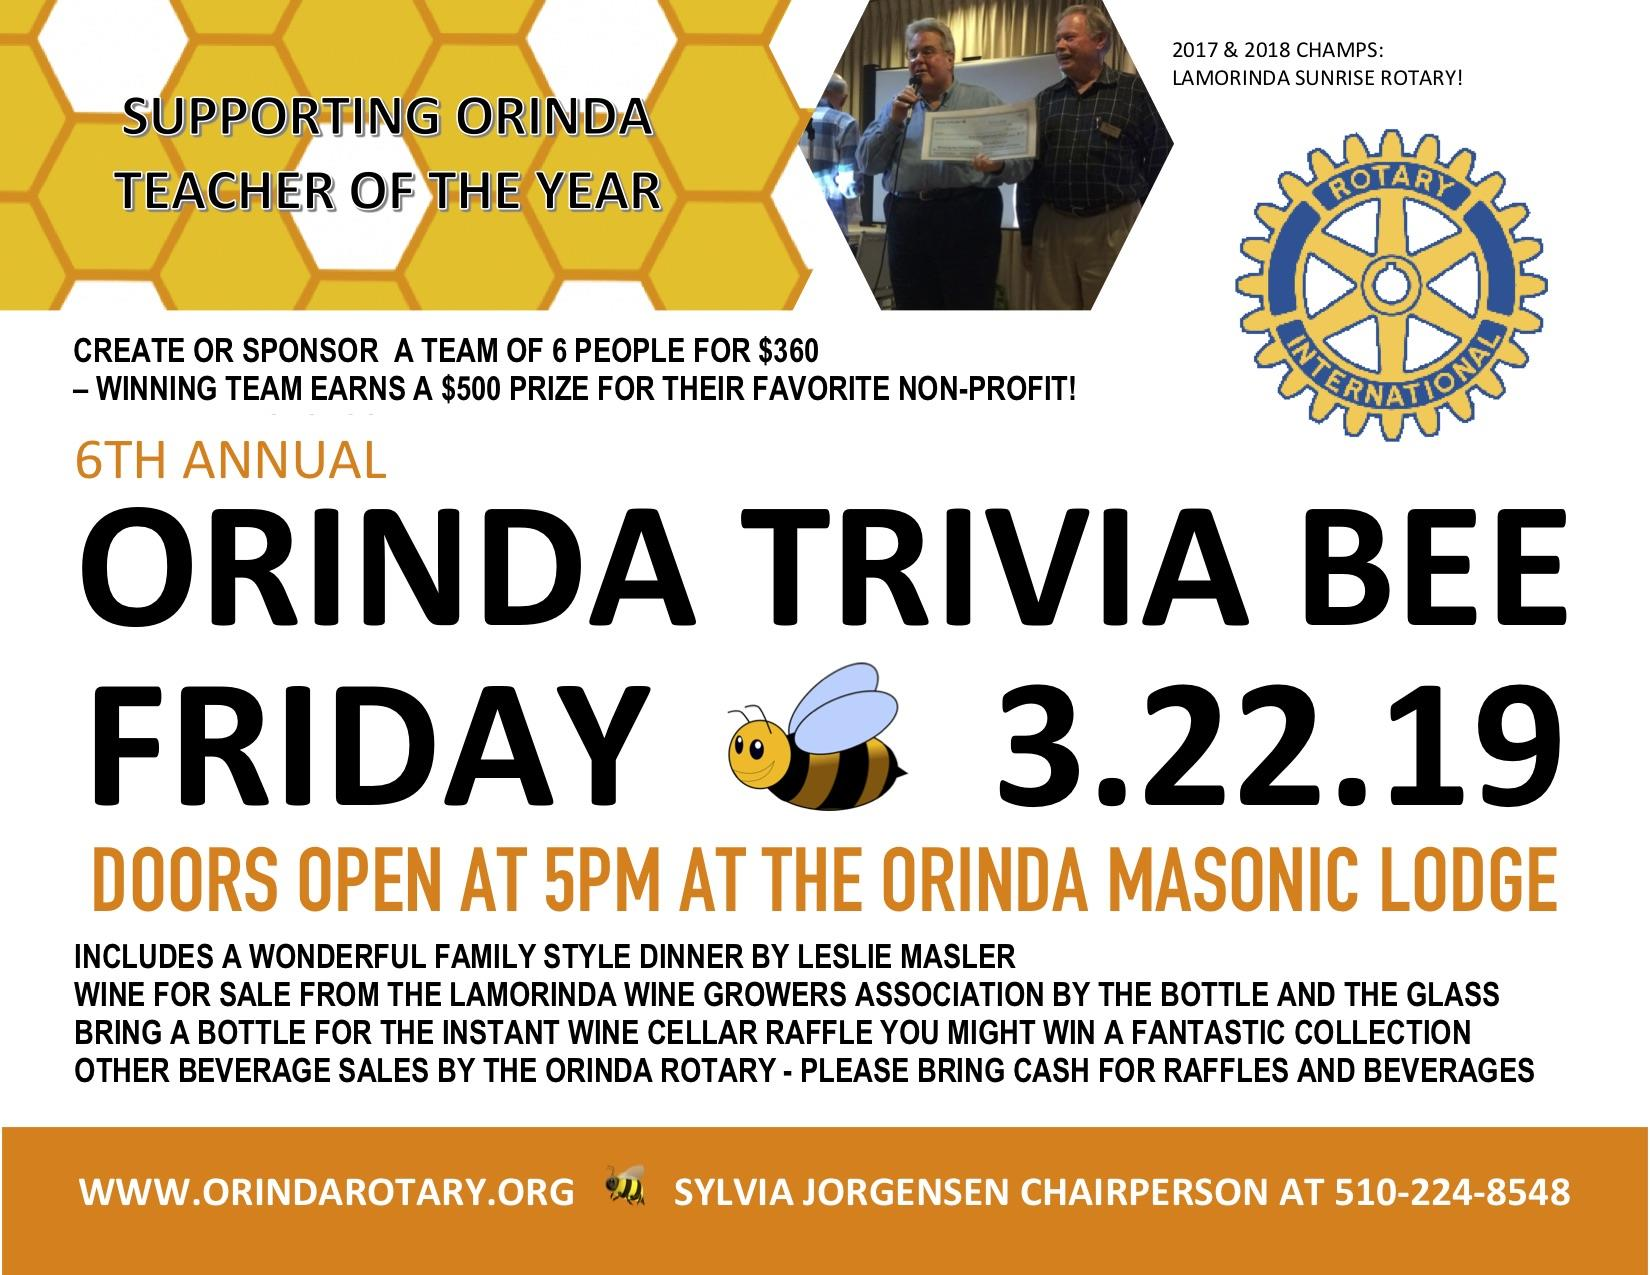 6th ANNUAL ROTARY TRIVIA BEE IS MARCH 22! | Rotary Club of Orinda